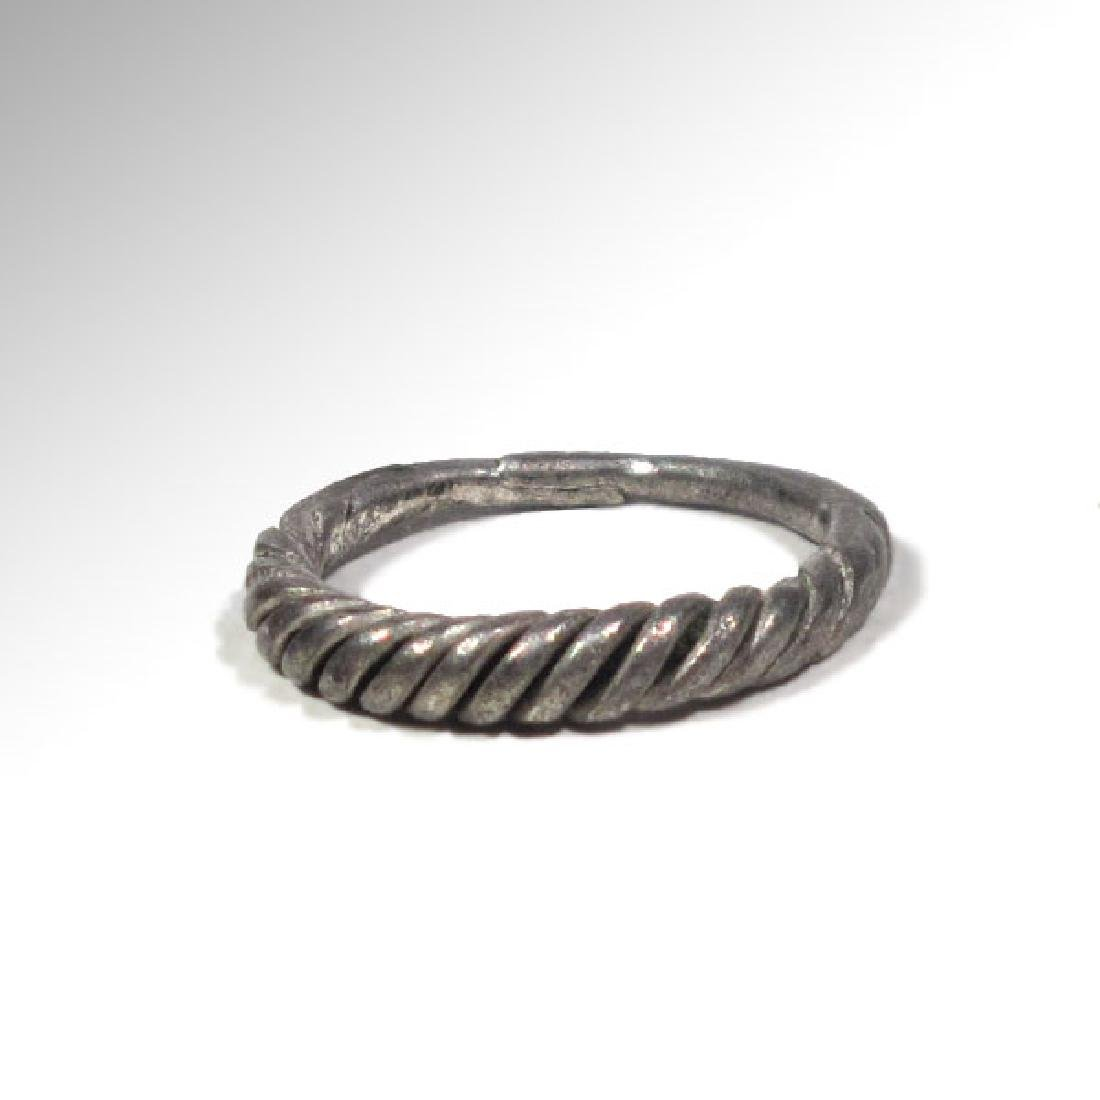 Viking Twisted Silver Ring, 9th -11th Century A.D.